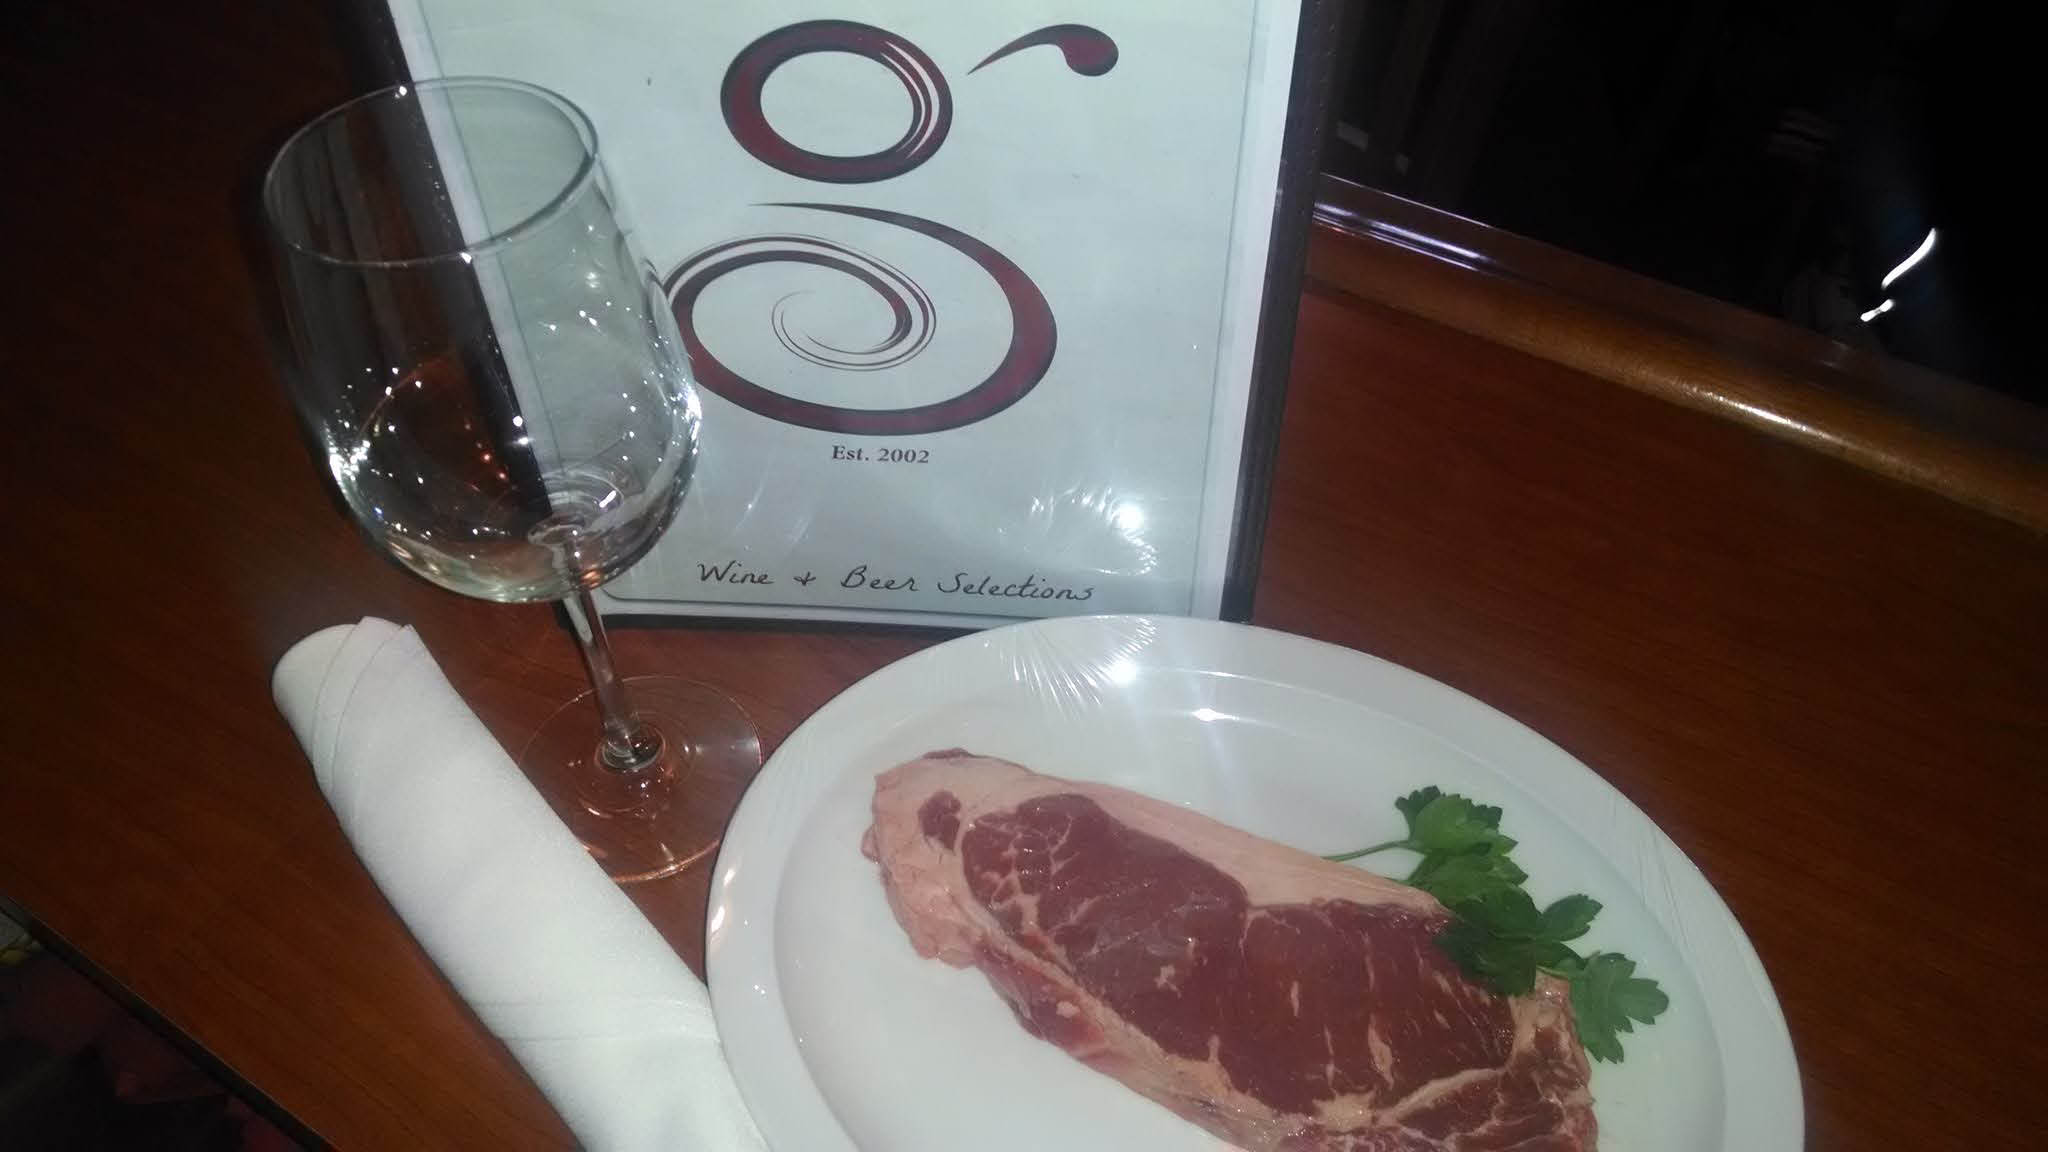 The Glen Cafe Grill serves Steak and wine to the residents of Fox Point, WI.